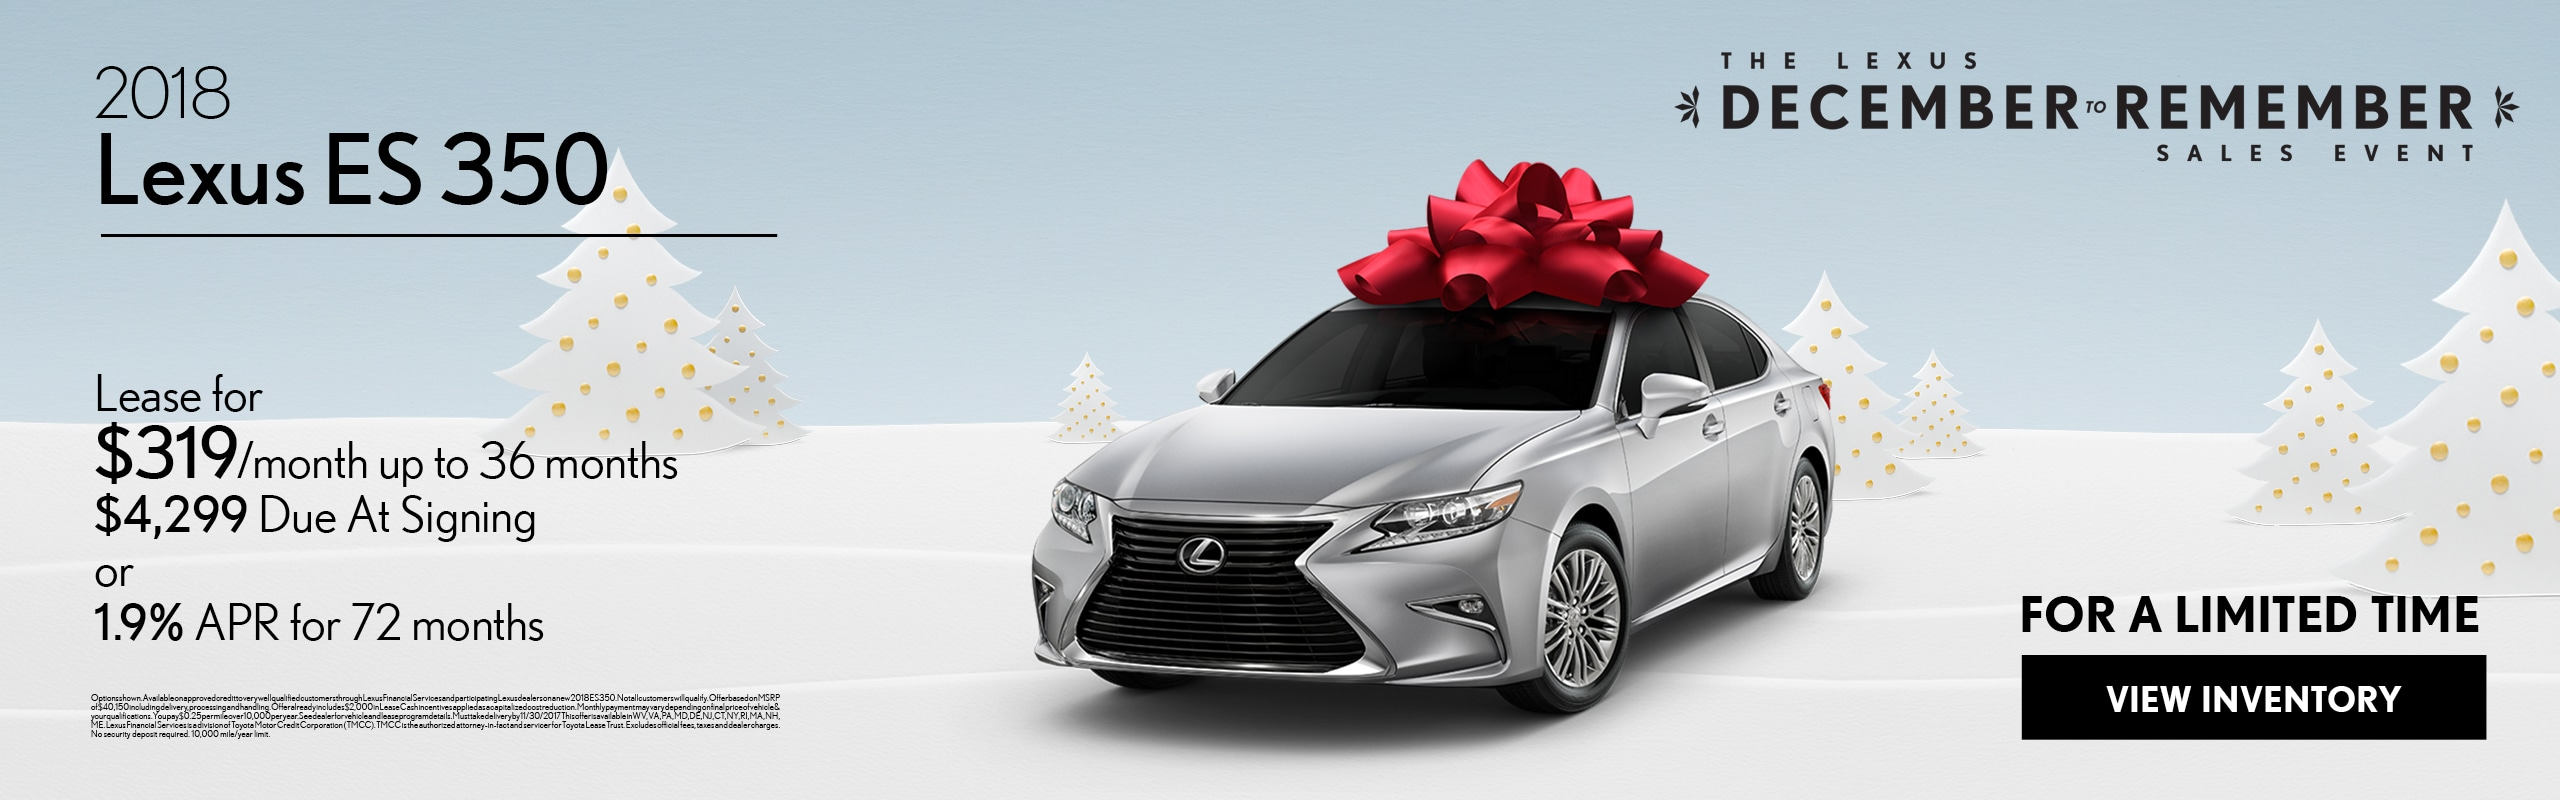 Best Of Lexus Dealer Seattle - Honda Civic and Accord Gallery ...